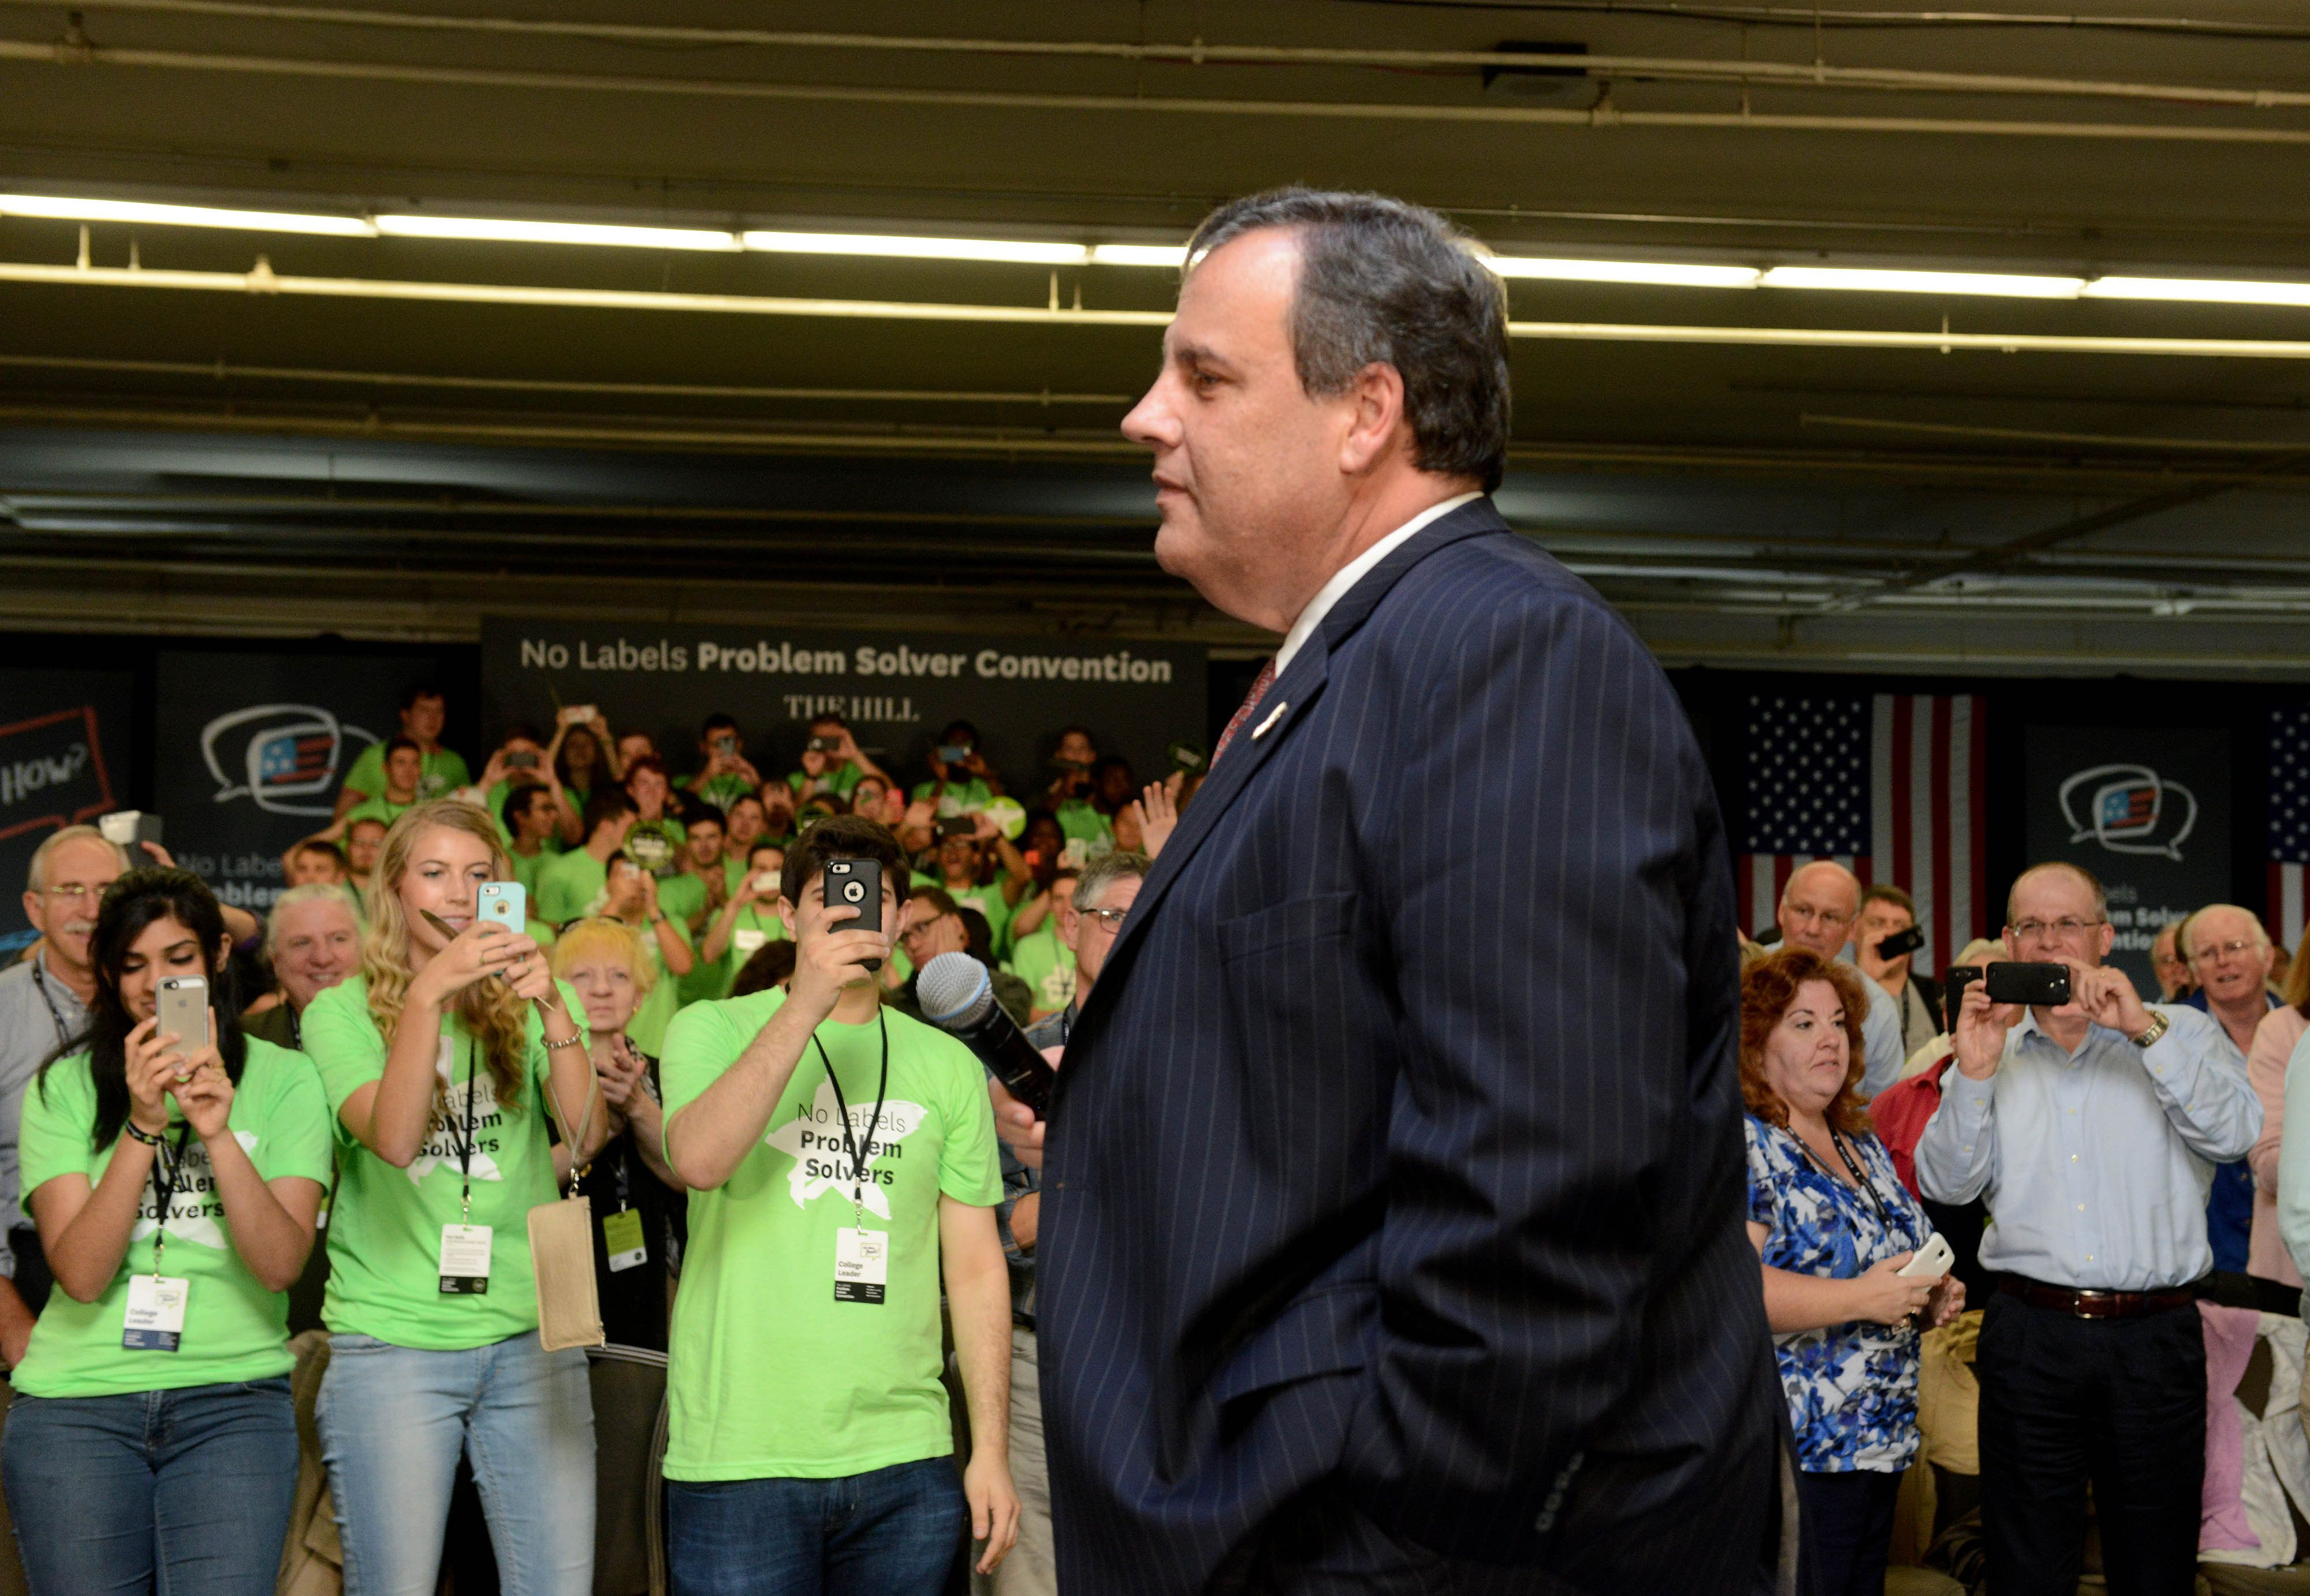 MANCHESTER, NH - OCTOBER 12: Republican Presidential candidate and New Jersey Gov. Chris Christie  speaks at the No Labels Problem Solver convention October 12, 2015 in Manchester, New Hampshire. Eight presidential candidates addressed the bipartisan event which included many undecided New Hampshire voters. (Photo by Darren McCollester/Getty Images)